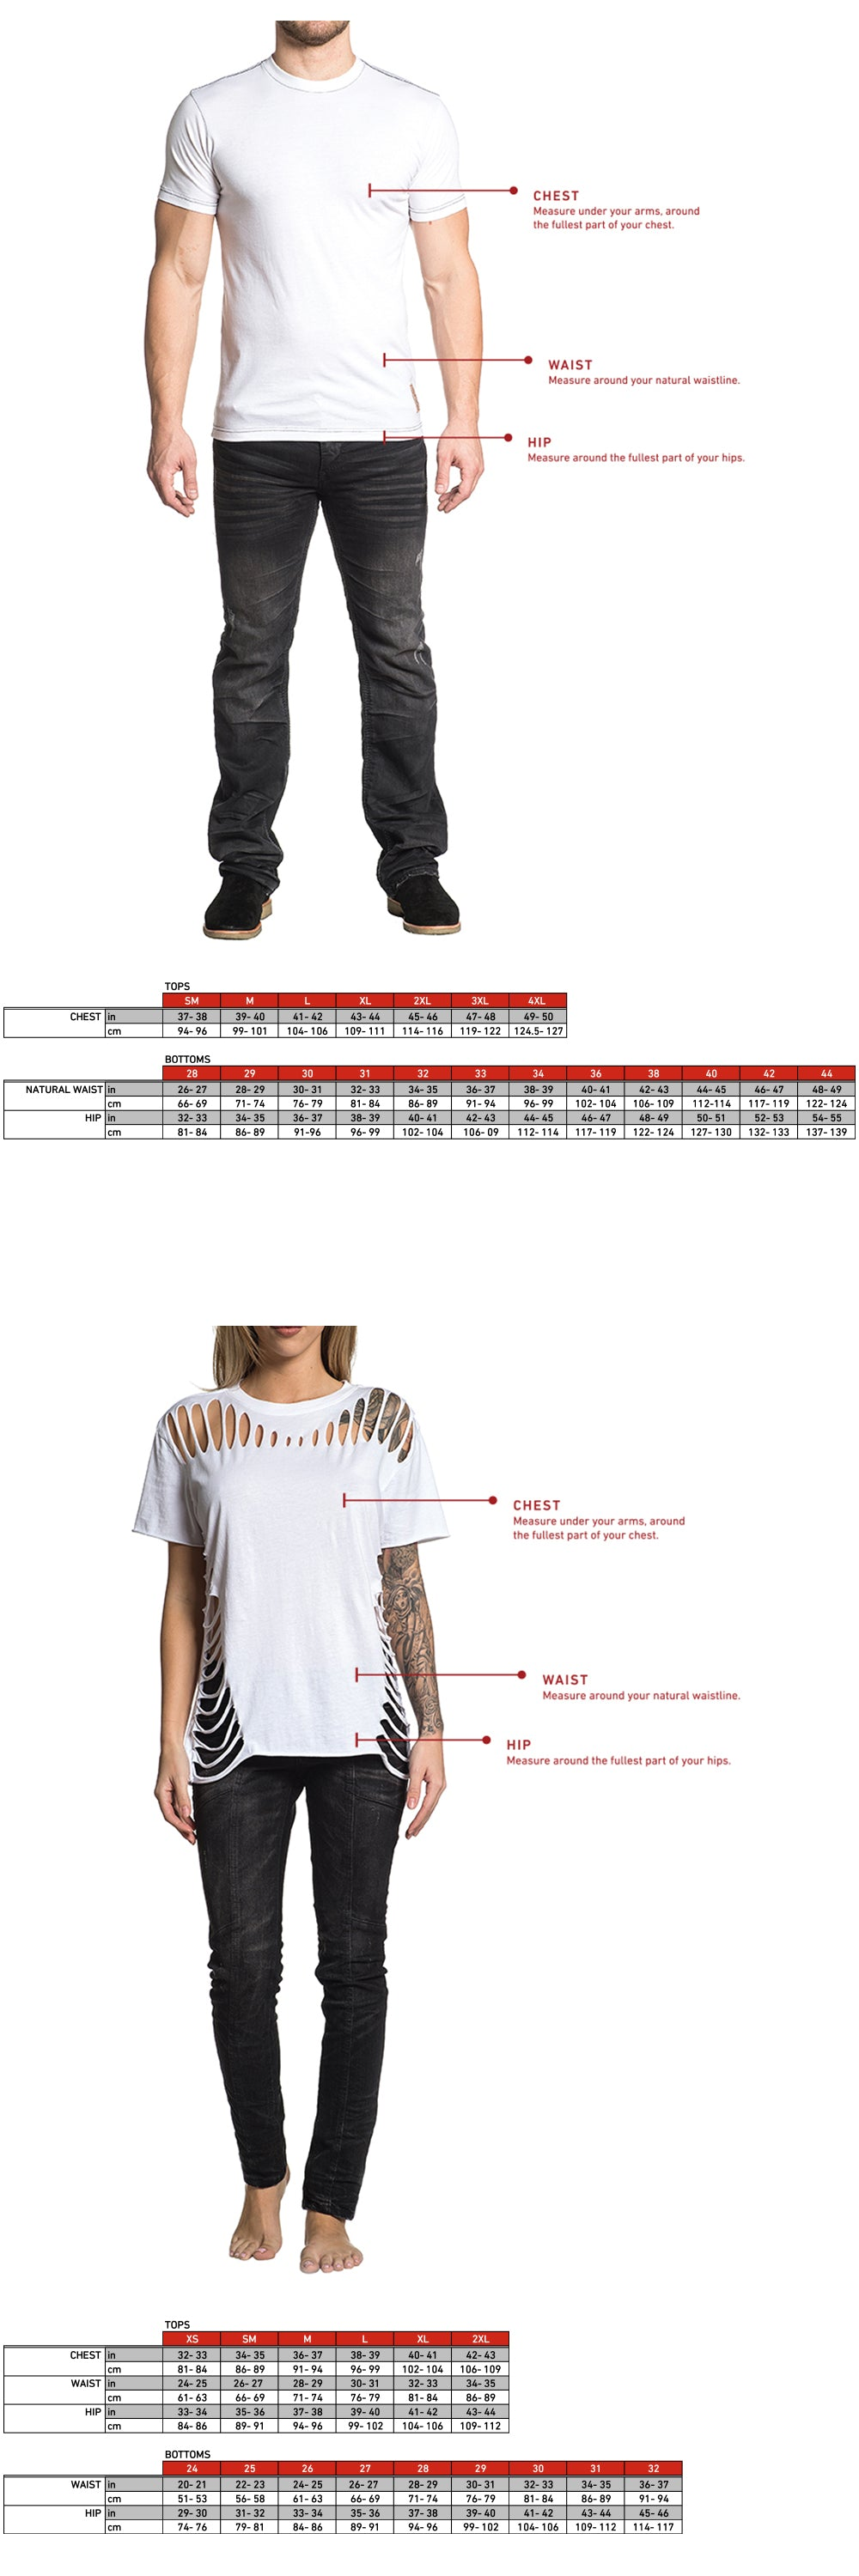 size-guide-2019